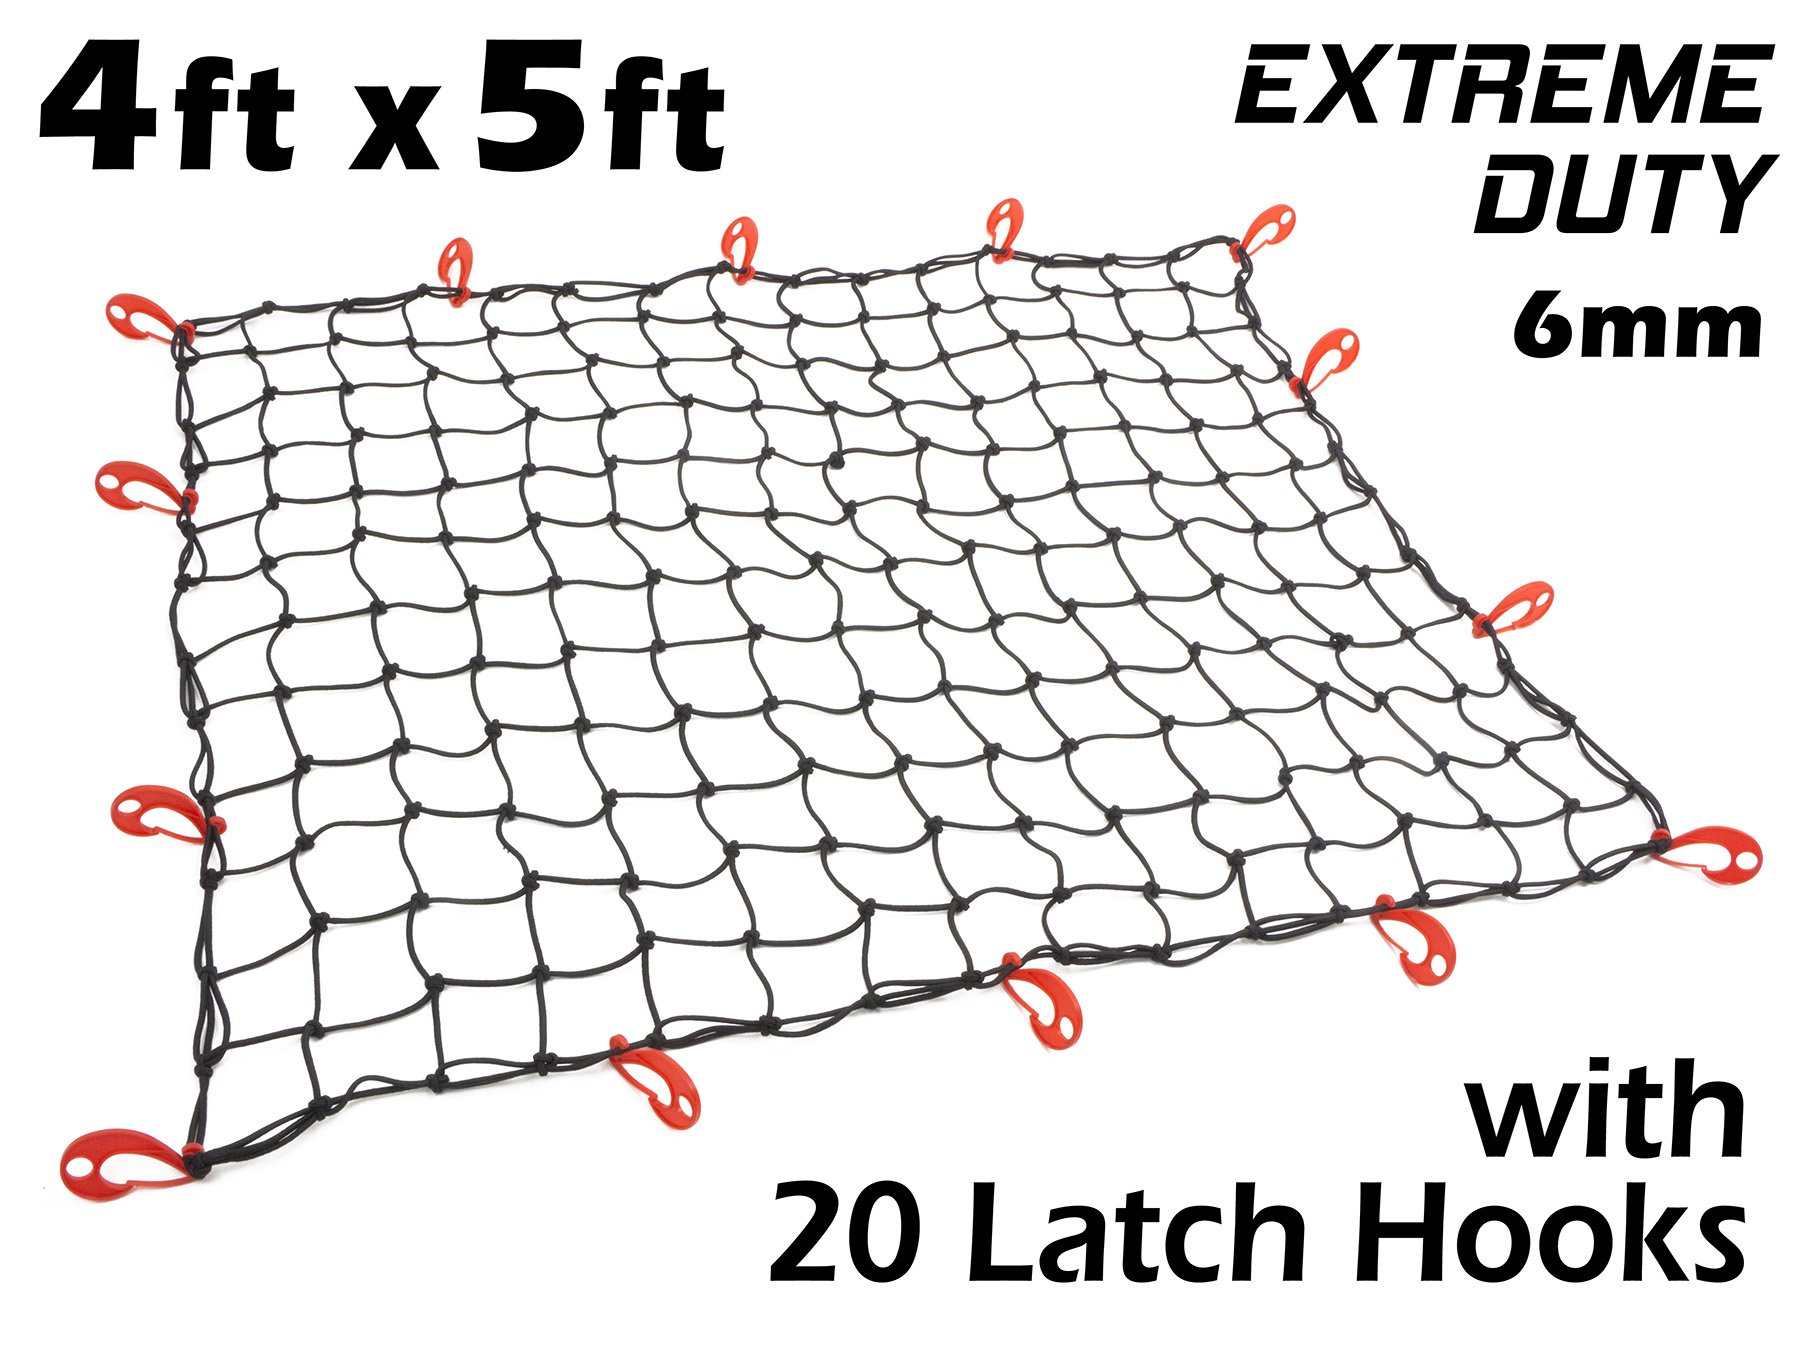 4ft x 5ft PowerTye Mfg EXTREME Duty 6mm Bungee Elastic Cargo Net with Latch Hooks| Stretches to 72'' x 90'' | 20 Large Latching Hooks, Black Net by Powertye